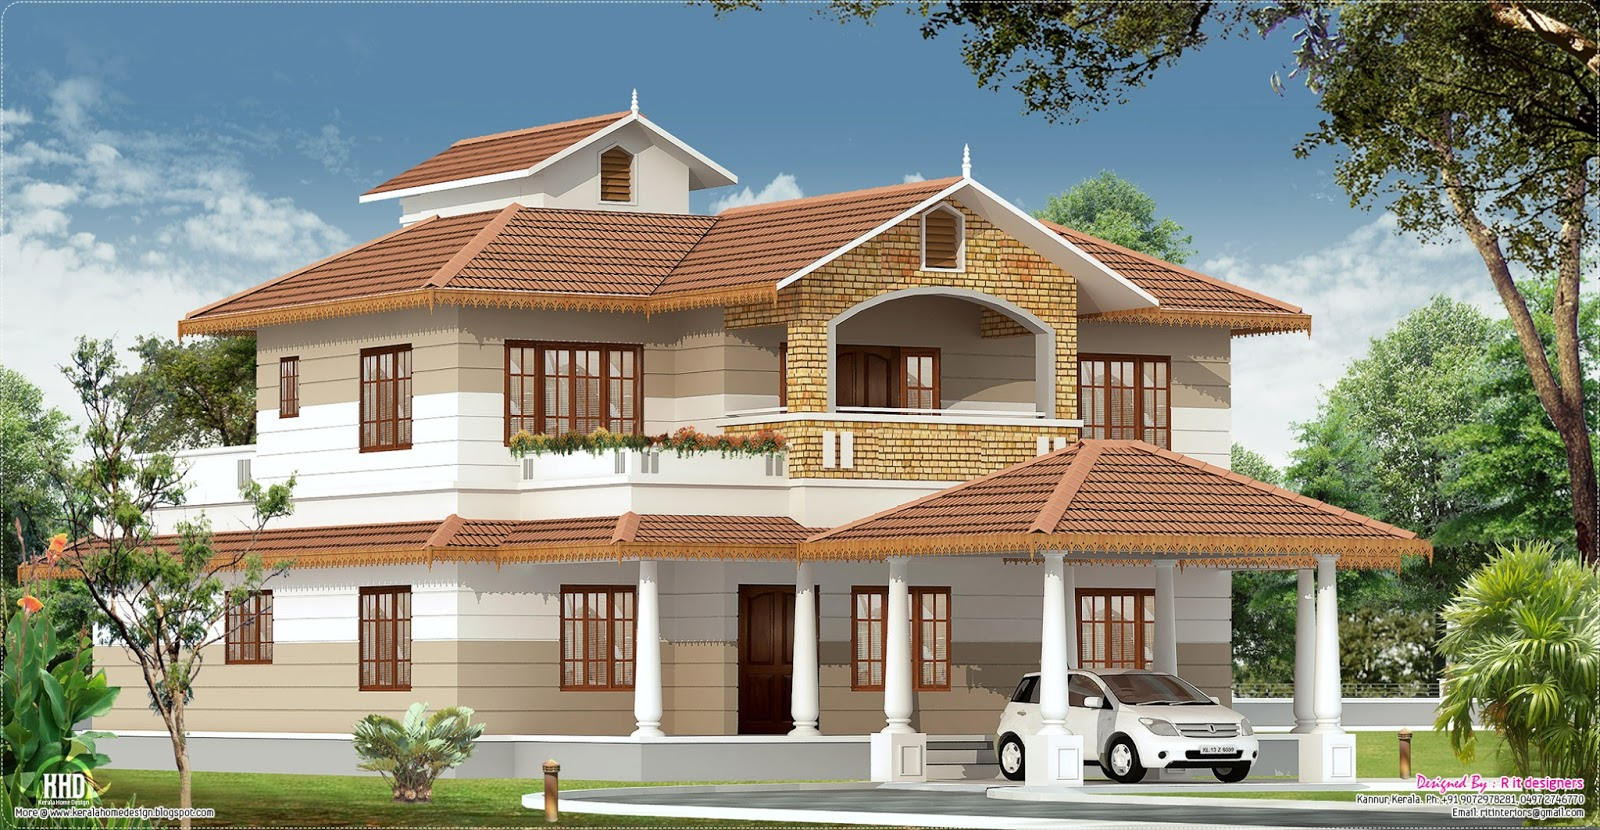 2700 kerala home with interior designs kerala for Designers homes